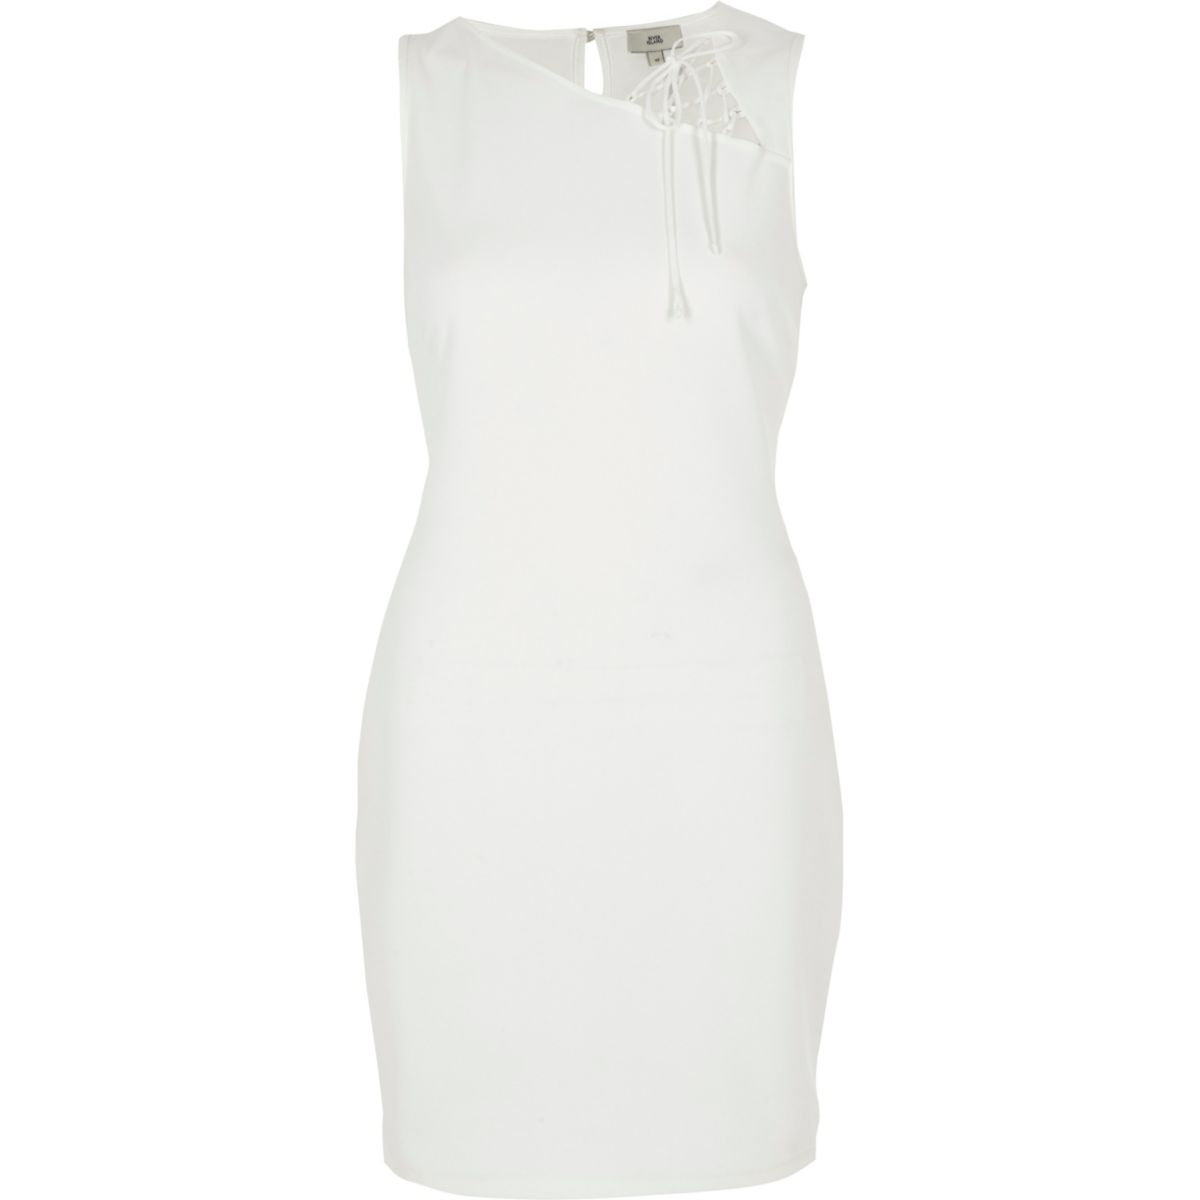 White sleeveless lace insert bodycon dress